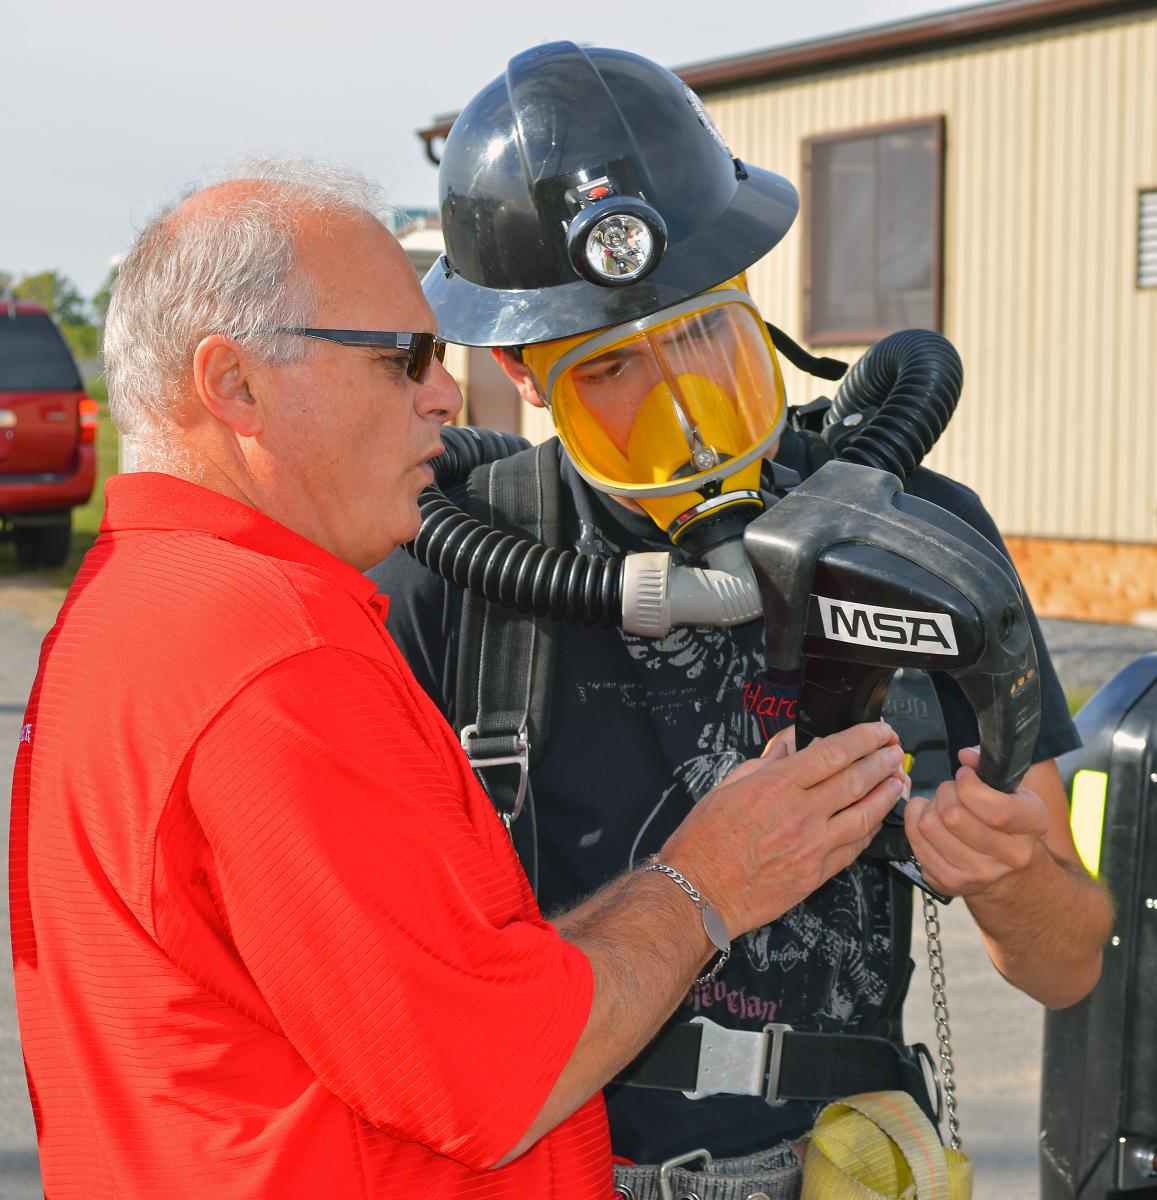 Mine Rescue Officer instructs student